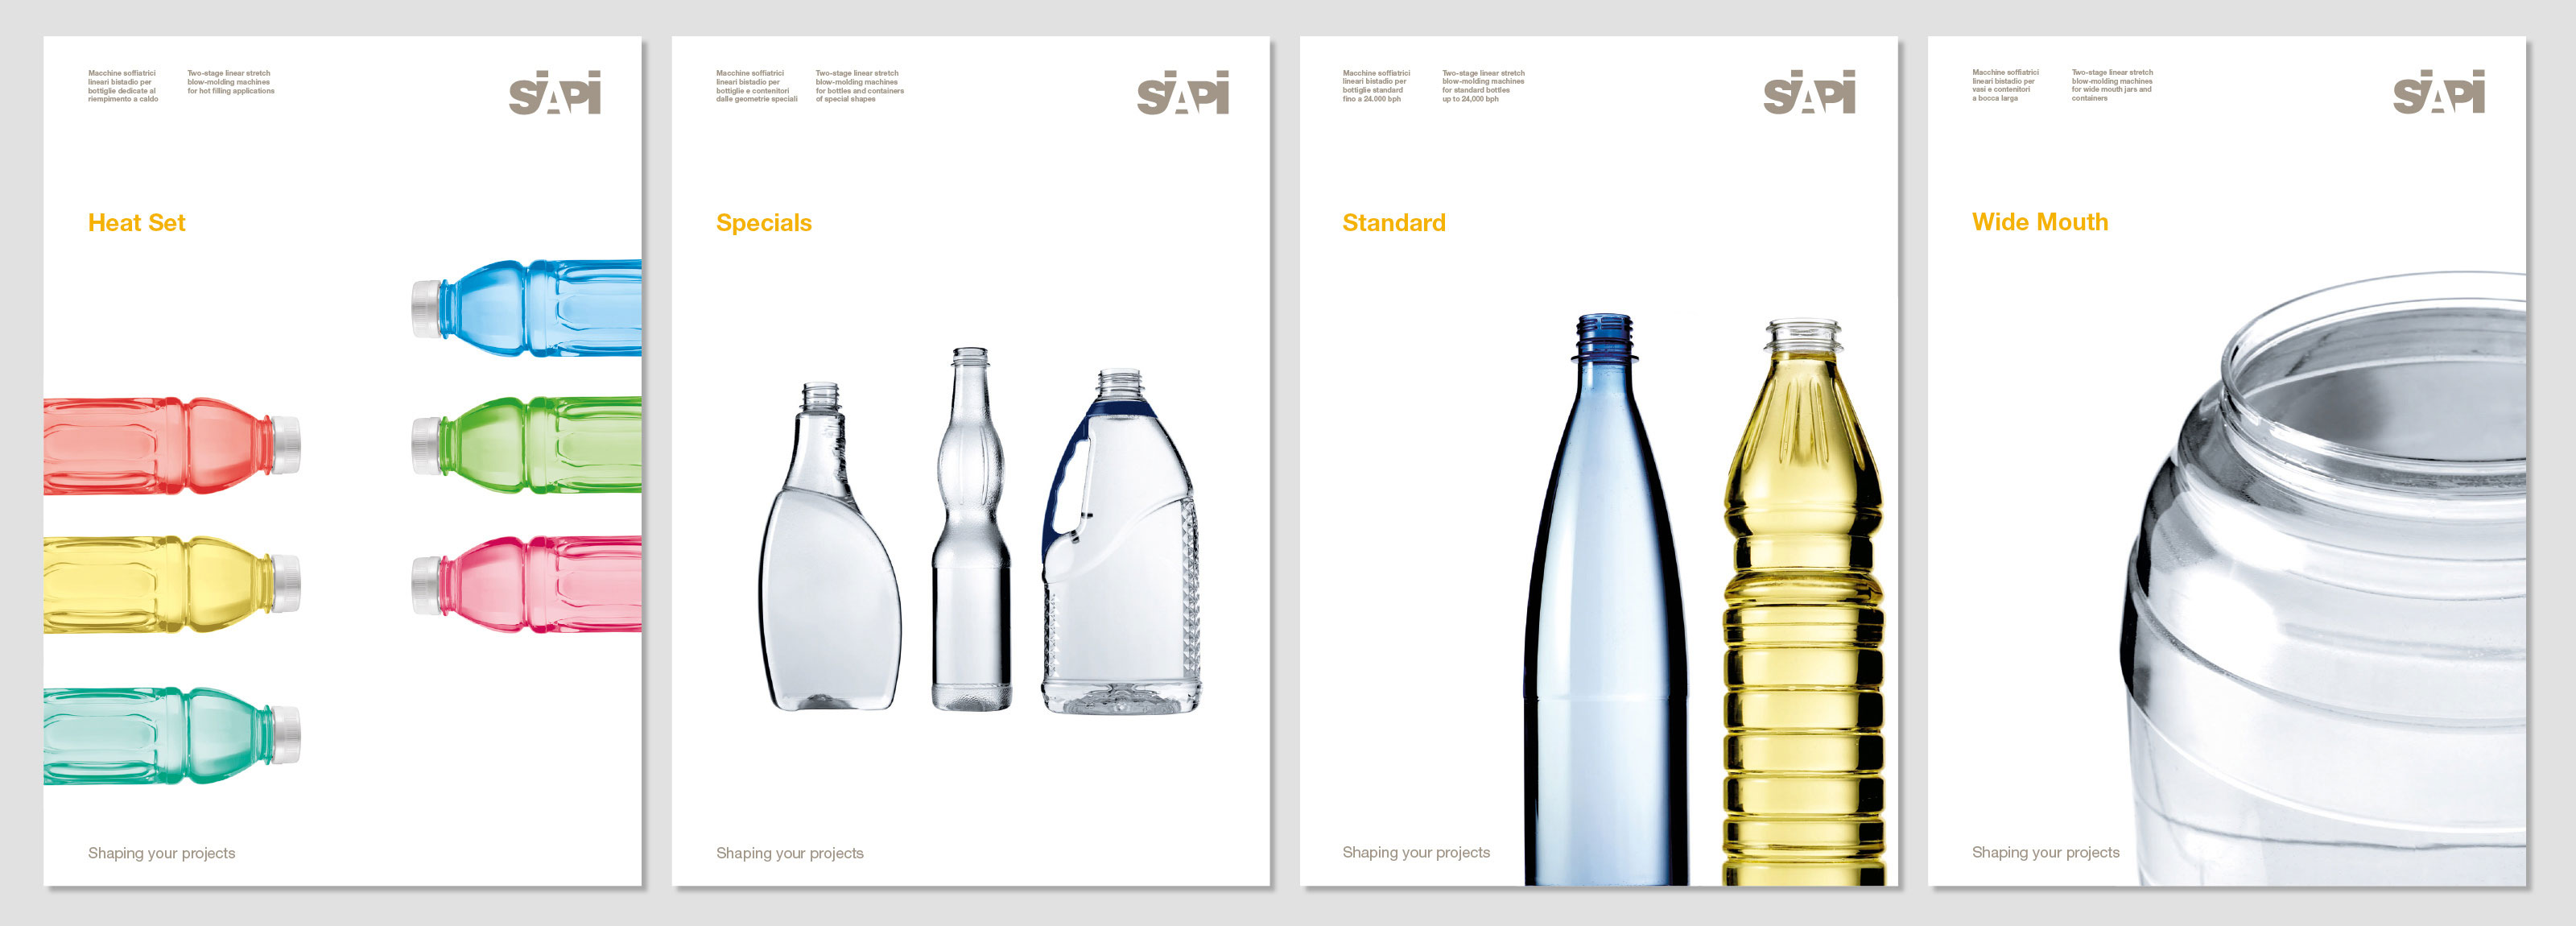 Hangar Design Group curated the whole identity system and corporate image of the brand